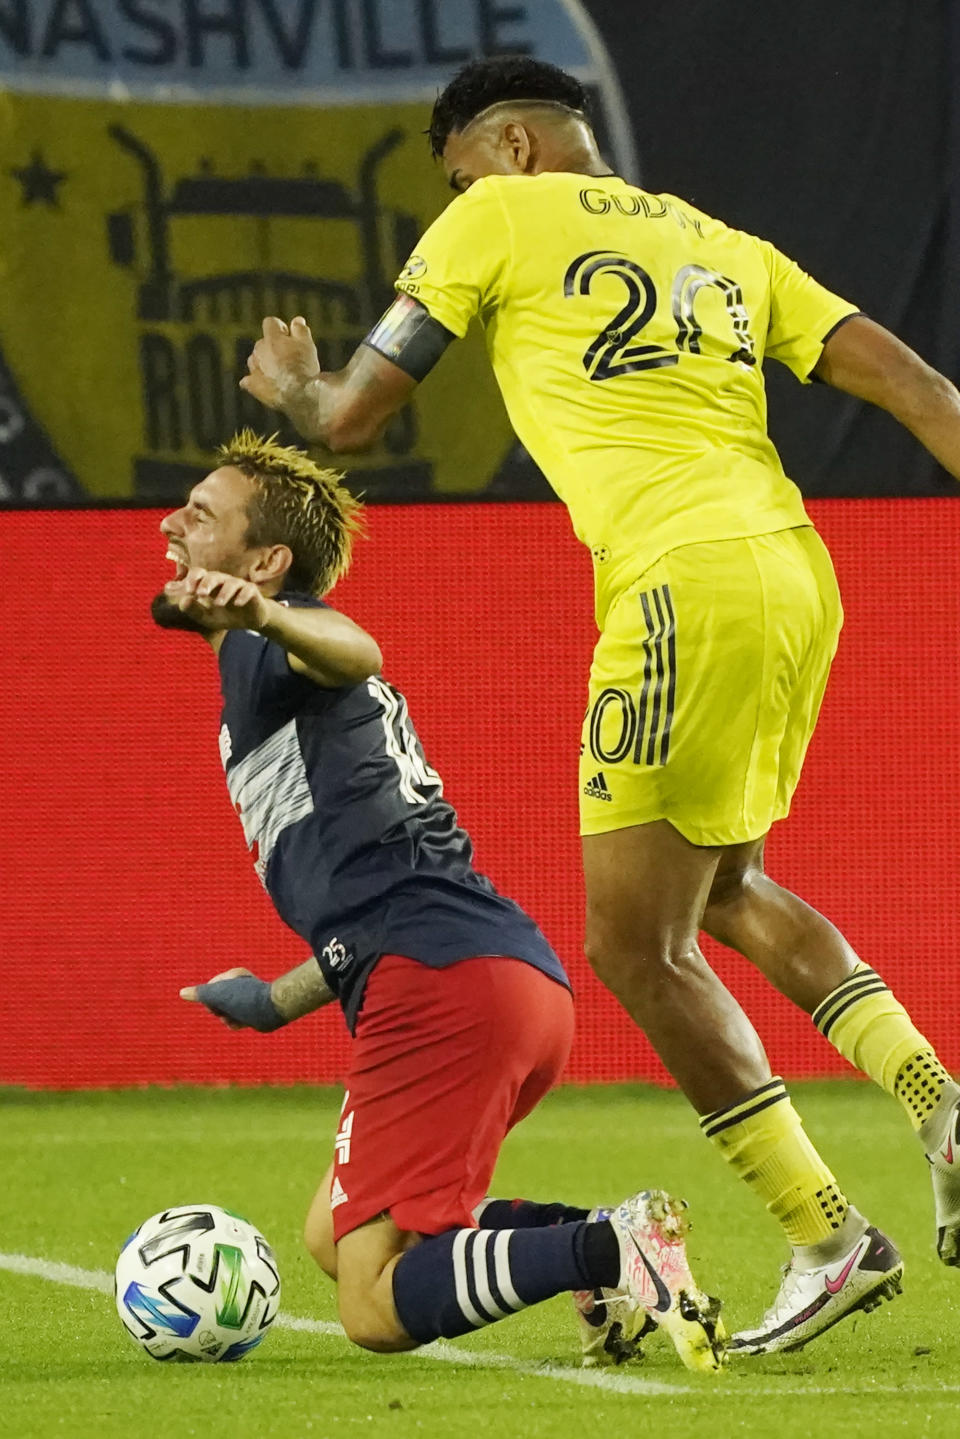 New England Revolution forward Diego Fagundez, left, and Nashville SC midfielder Anibal Godoy (20) collide during the first half of an MLS soccer match Friday, Oct. 23, 2020, in Nashville, Tenn. (AP Photo/Mark Humphrey)